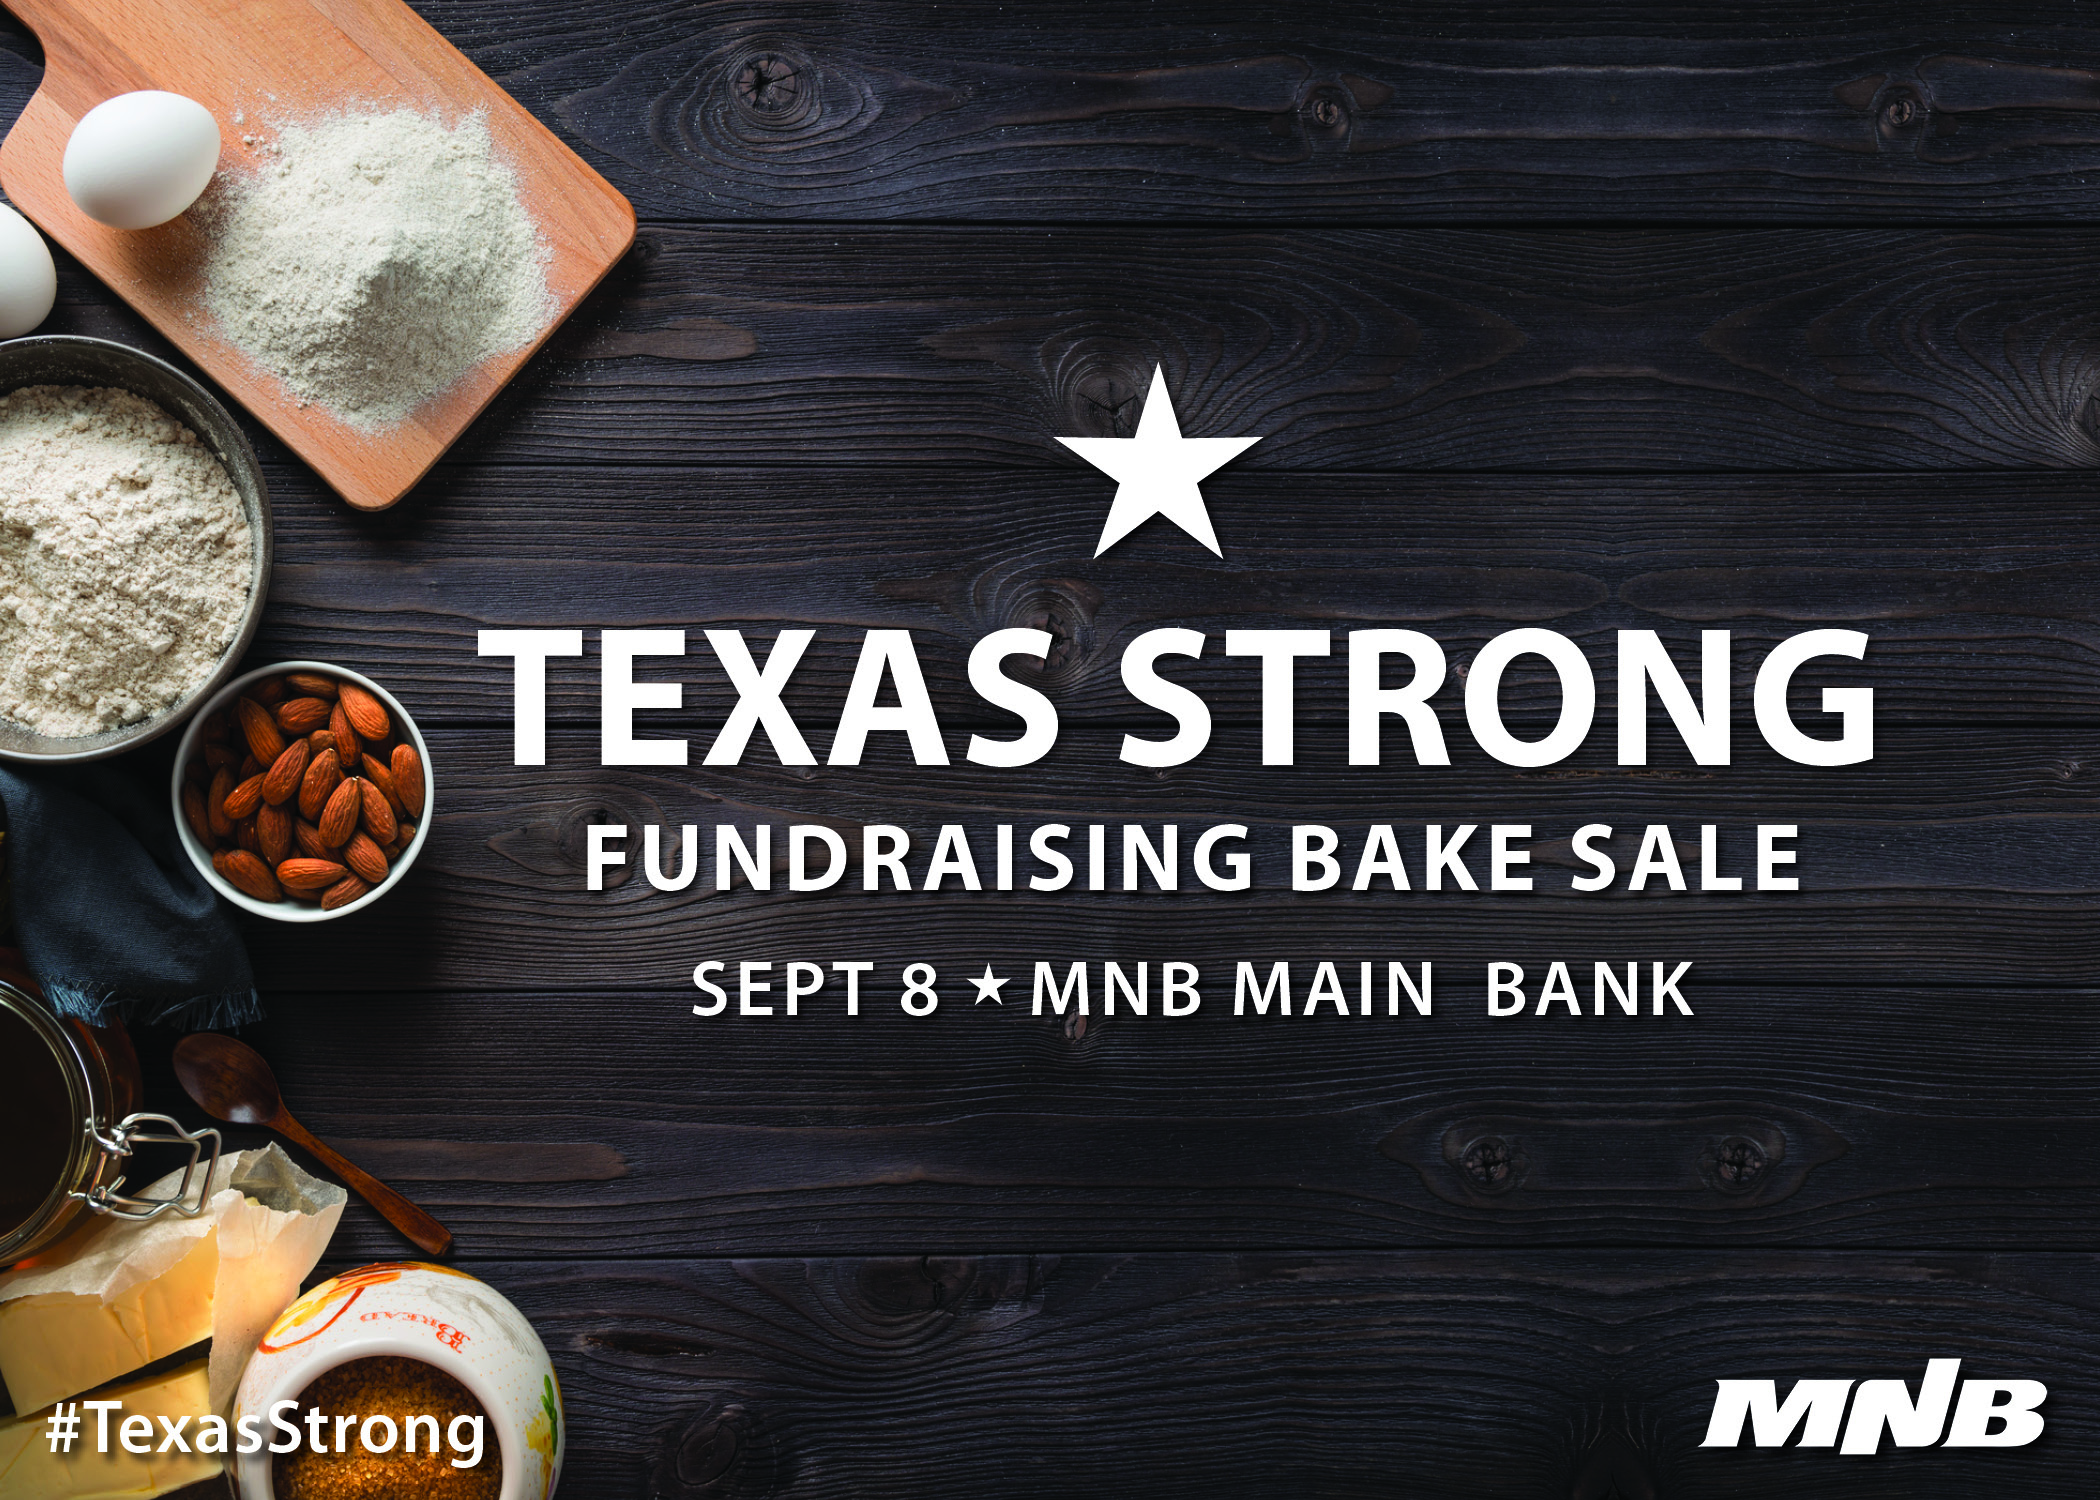 Hurricane Harvey Relief Fundraising Bake Sale